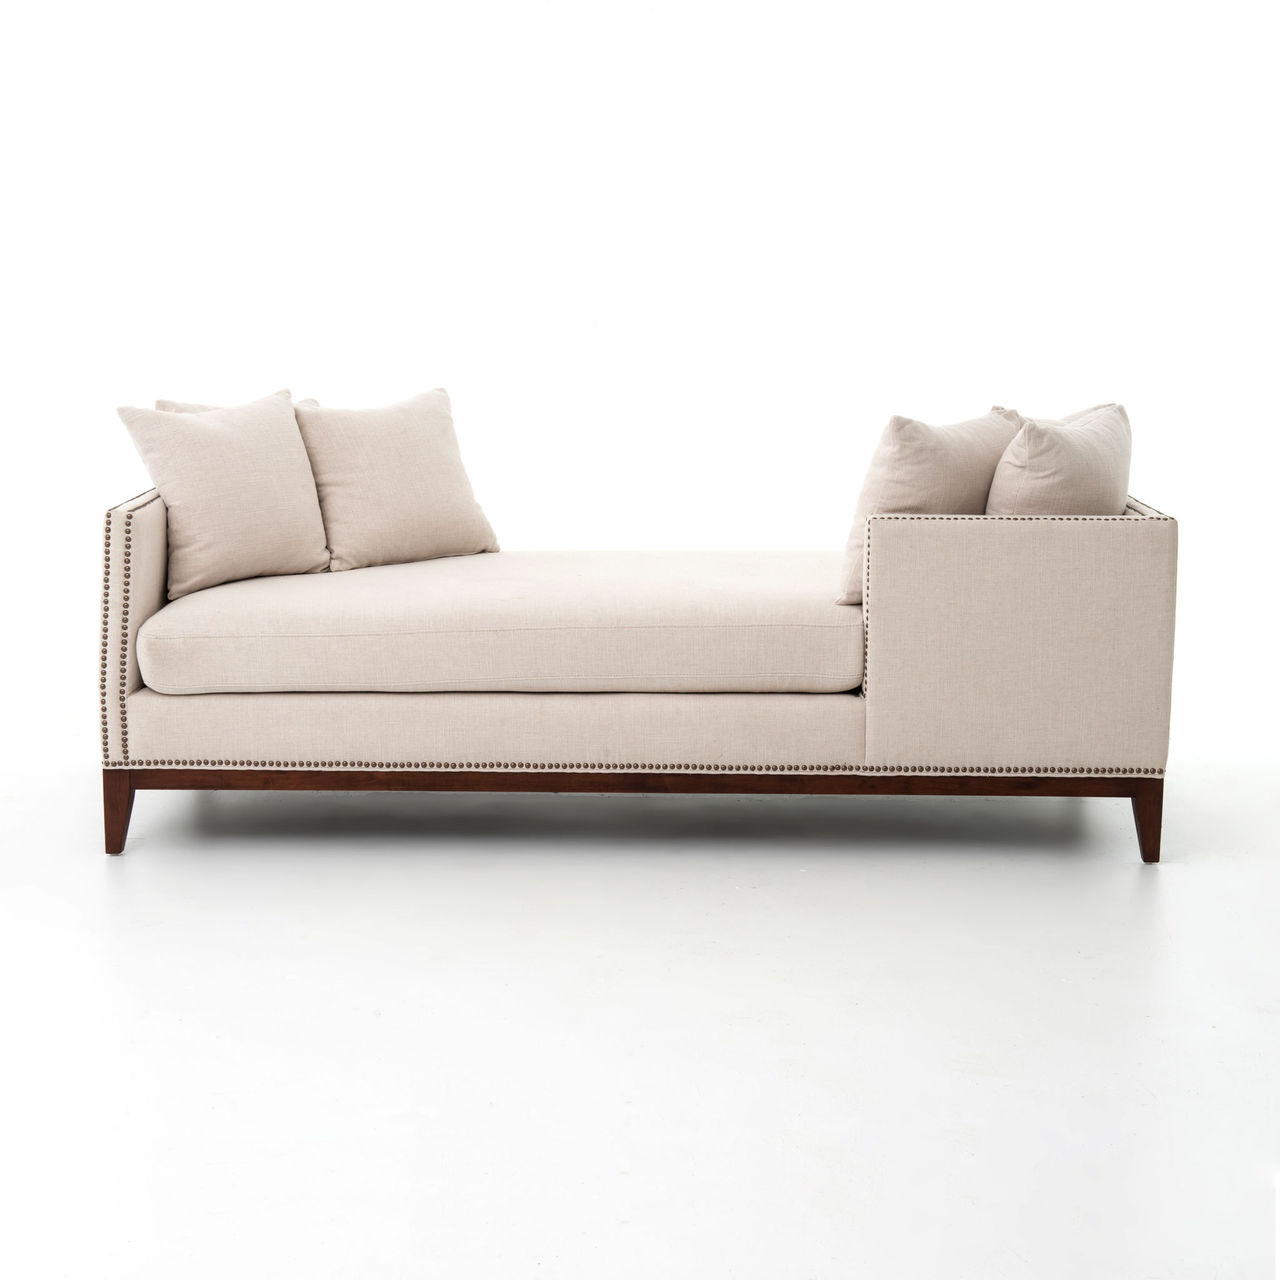 kensington beige upholstered double chaise daybed sofa